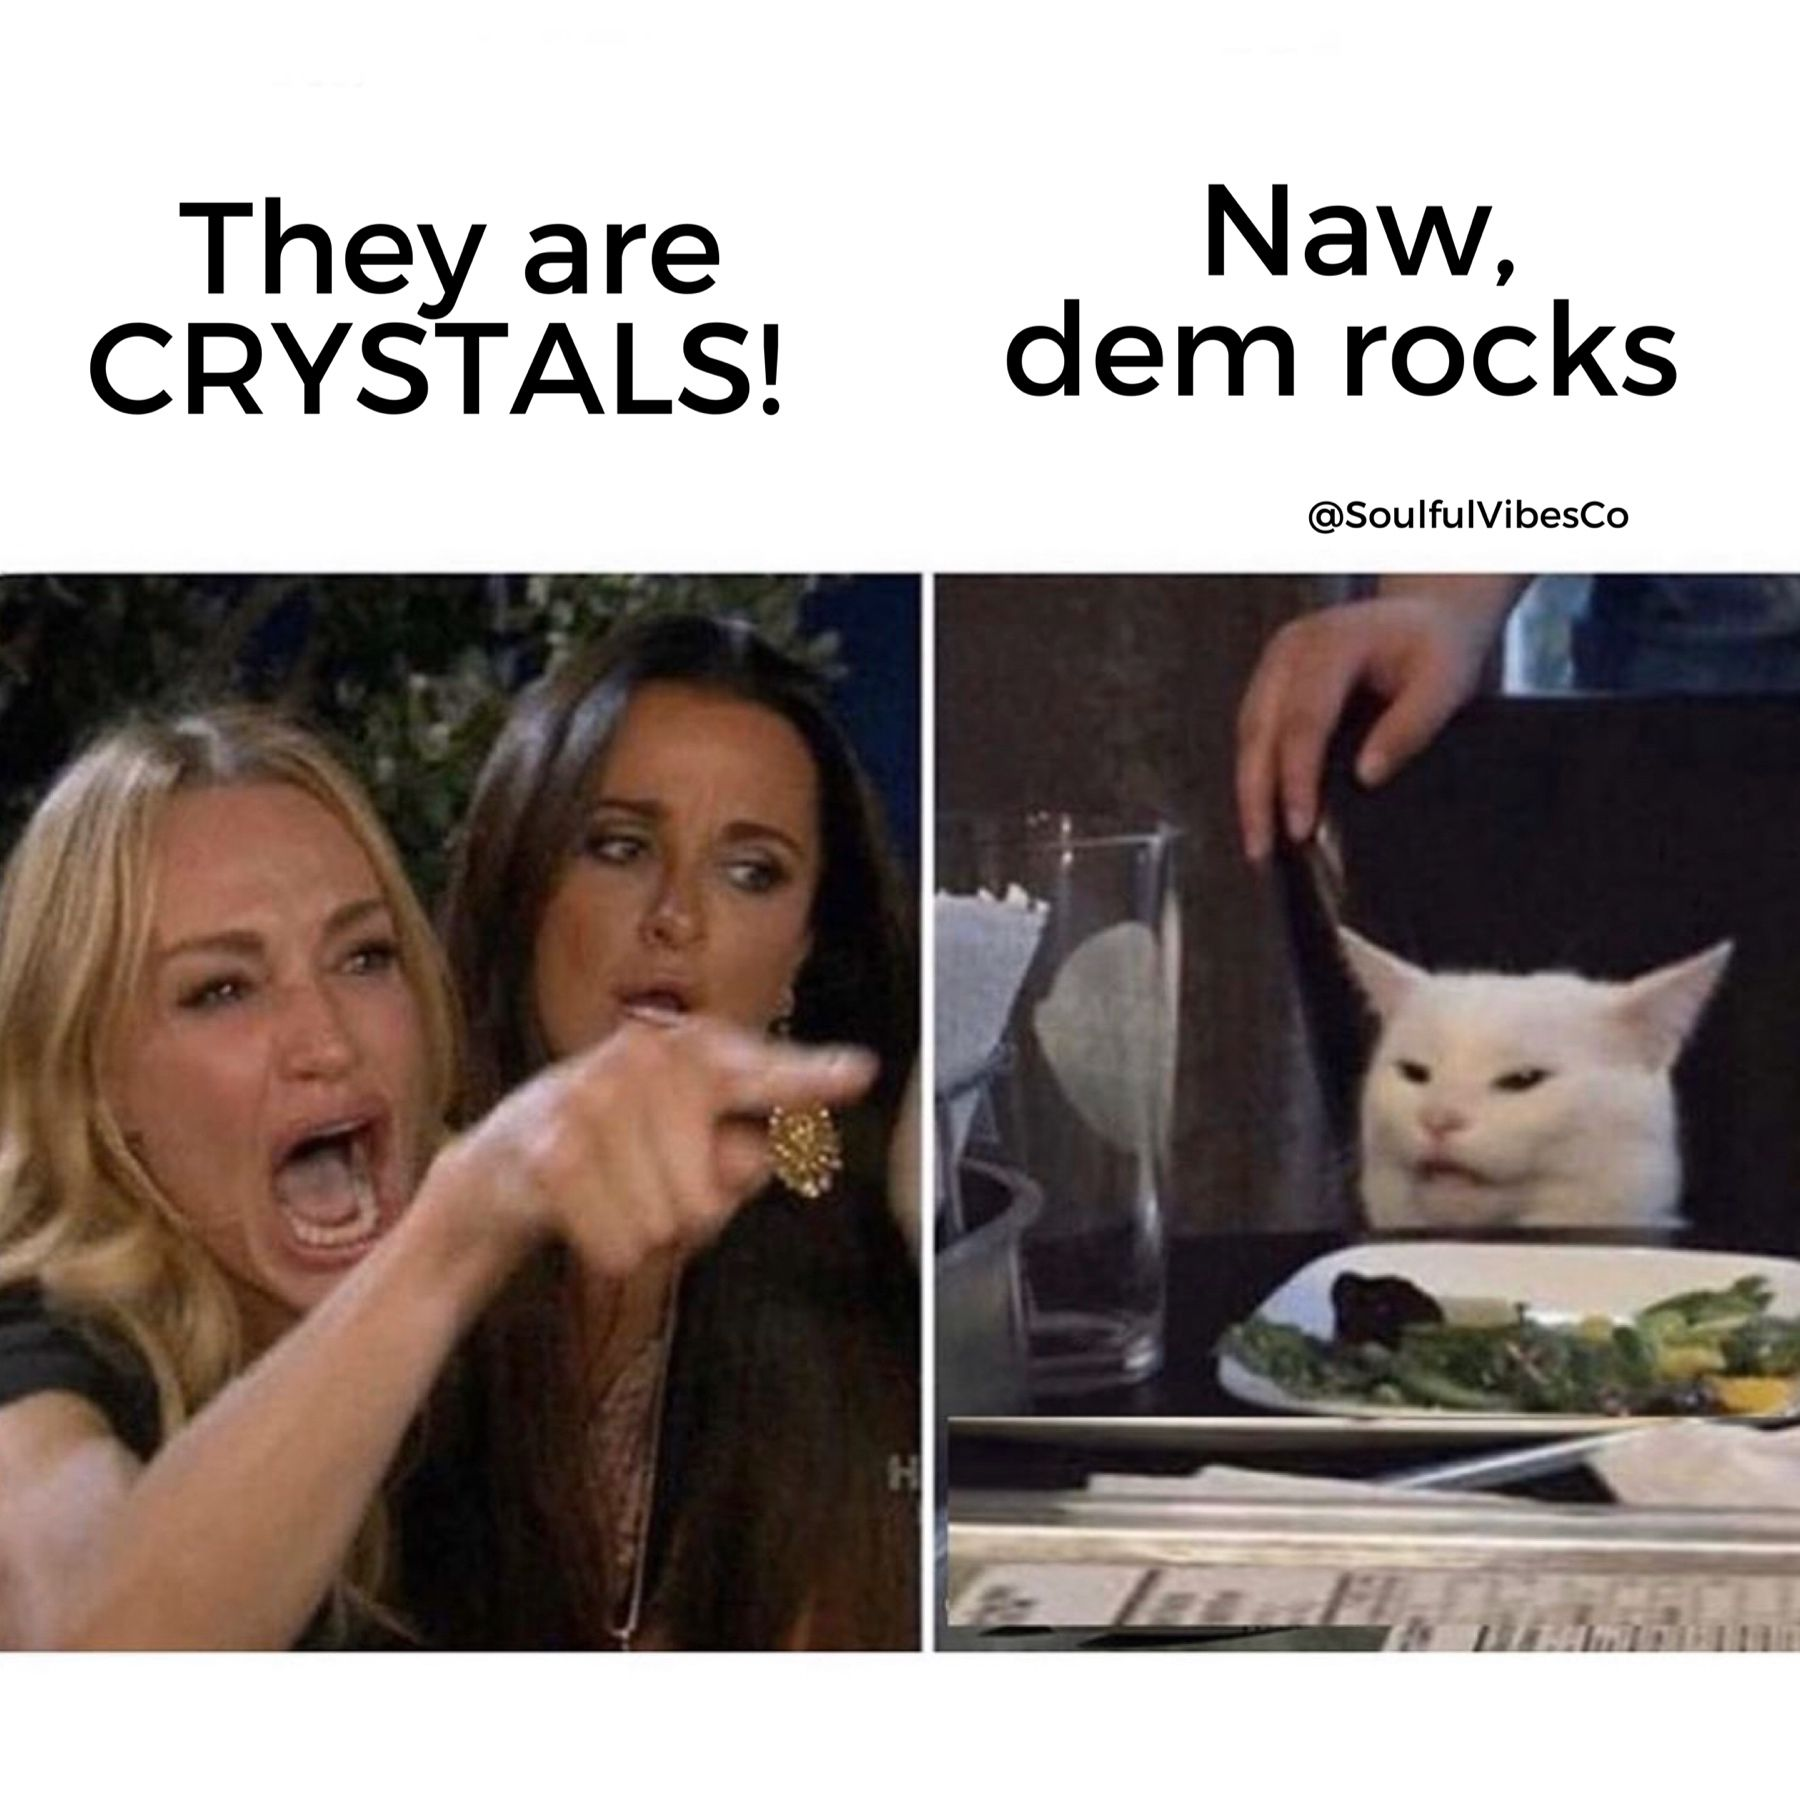 Every crystal lover knows at least 2 people that refuse to